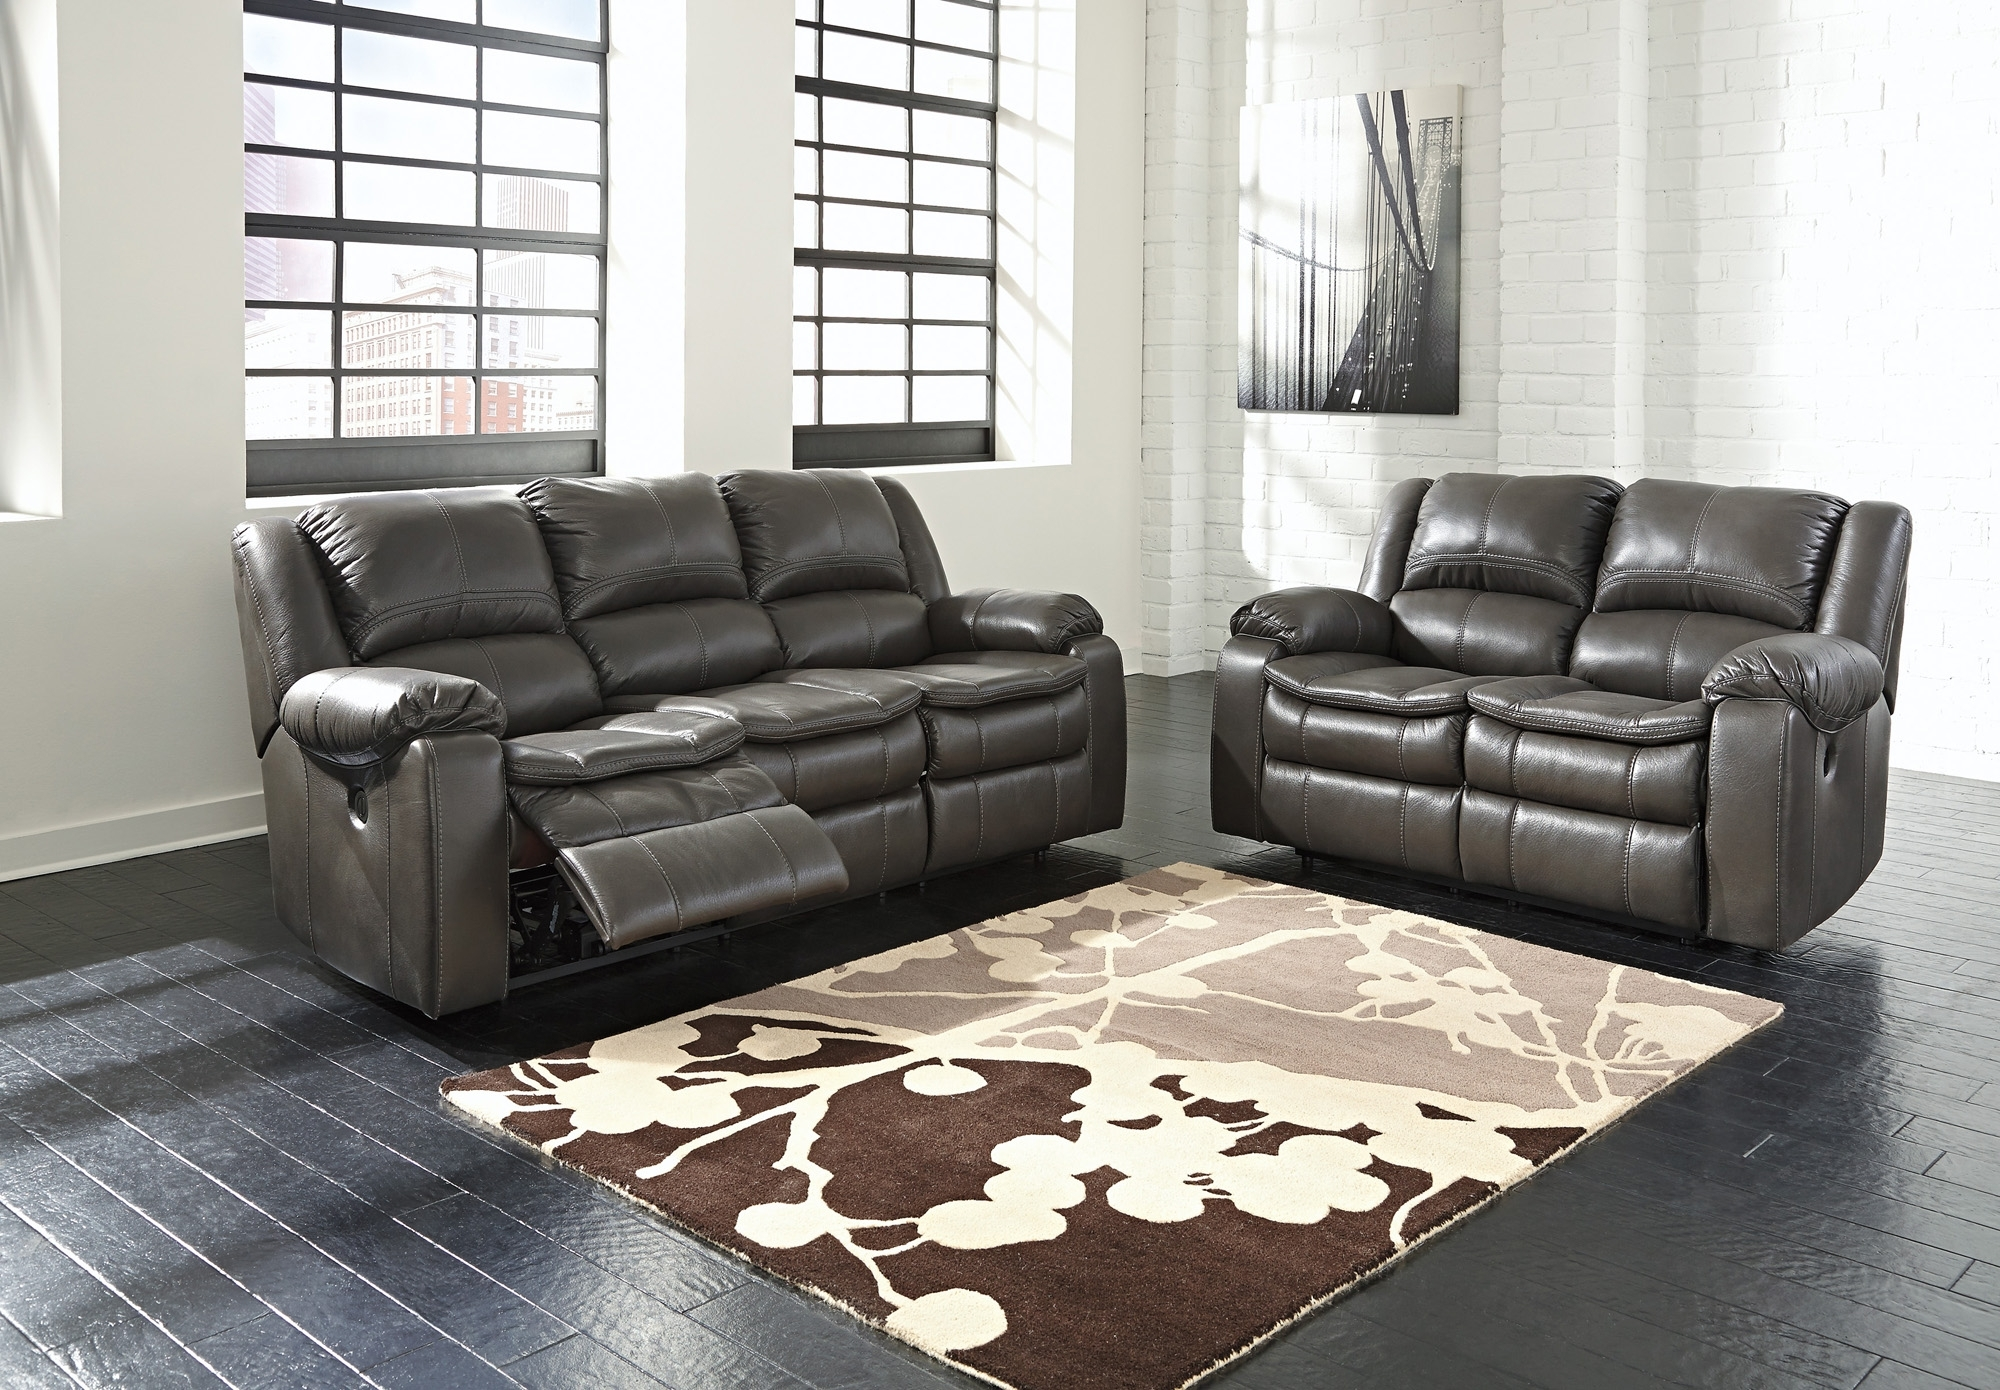 Sofa Cincinnati | Catosfera Within Cincinnati Sectional Sofas (Image 8 of 10)